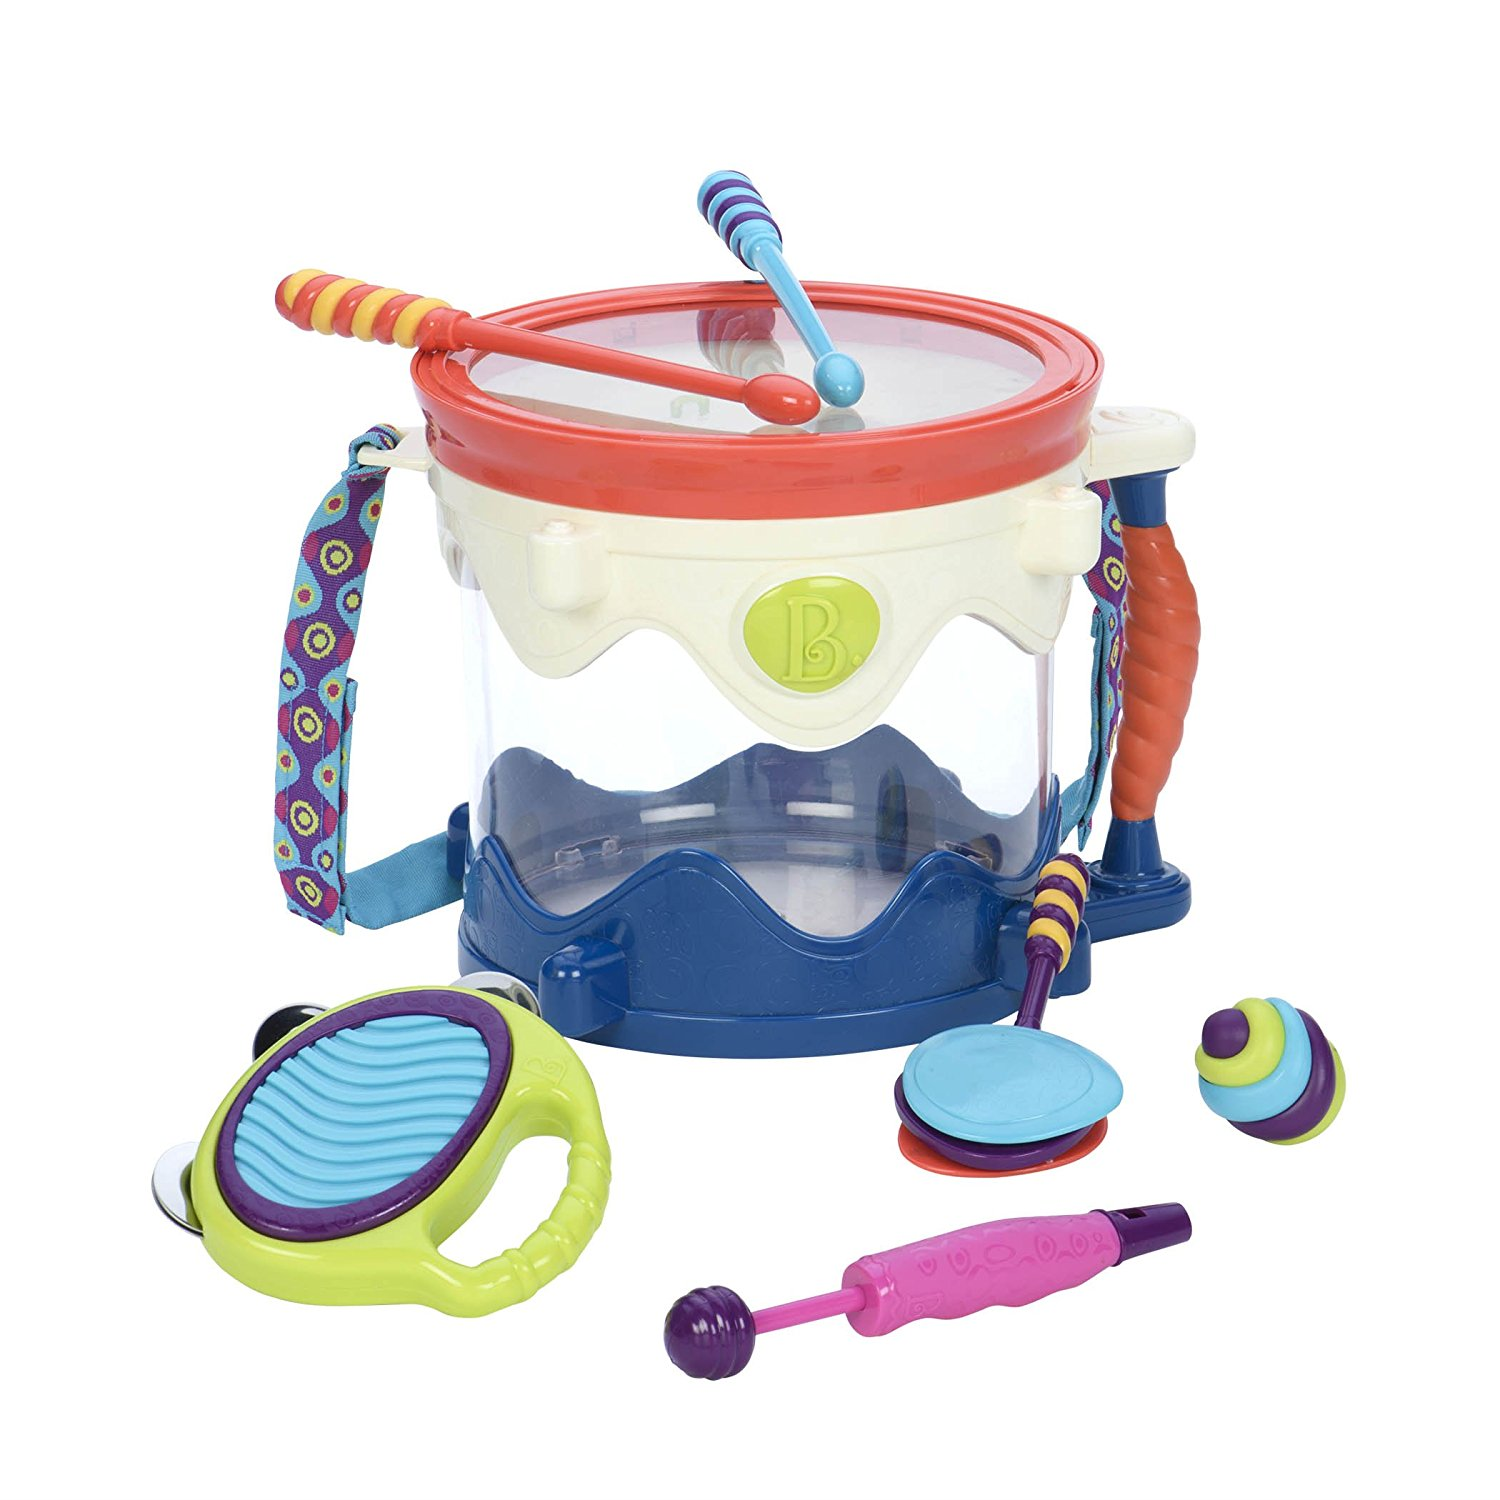 Drum Toy For 1 Year Olds : Best toys for one year olds